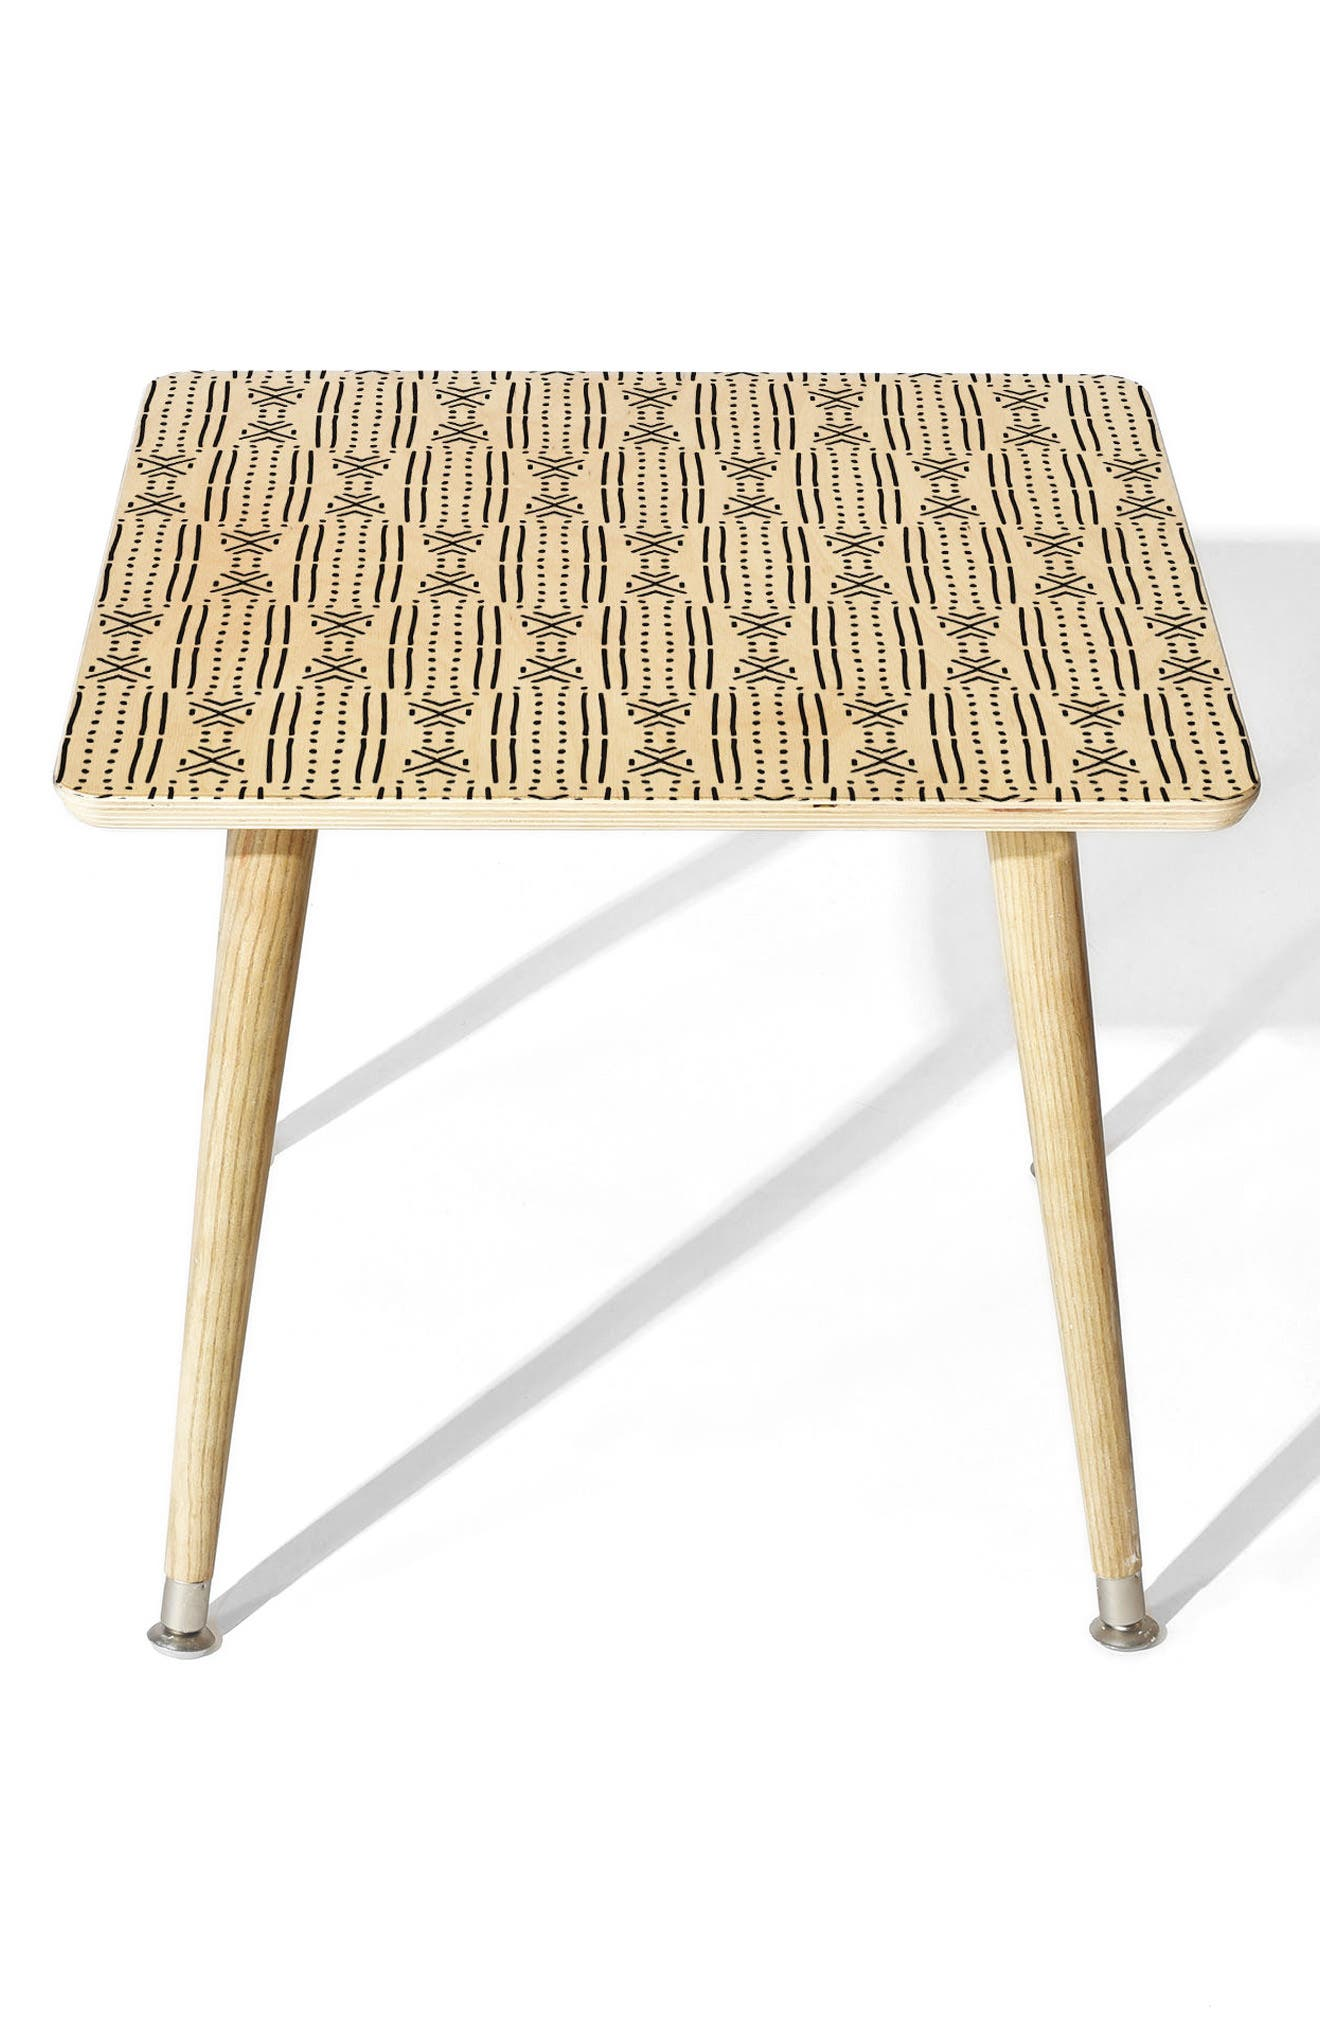 Mudcloth Side Table,                             Main thumbnail 1, color,                             White